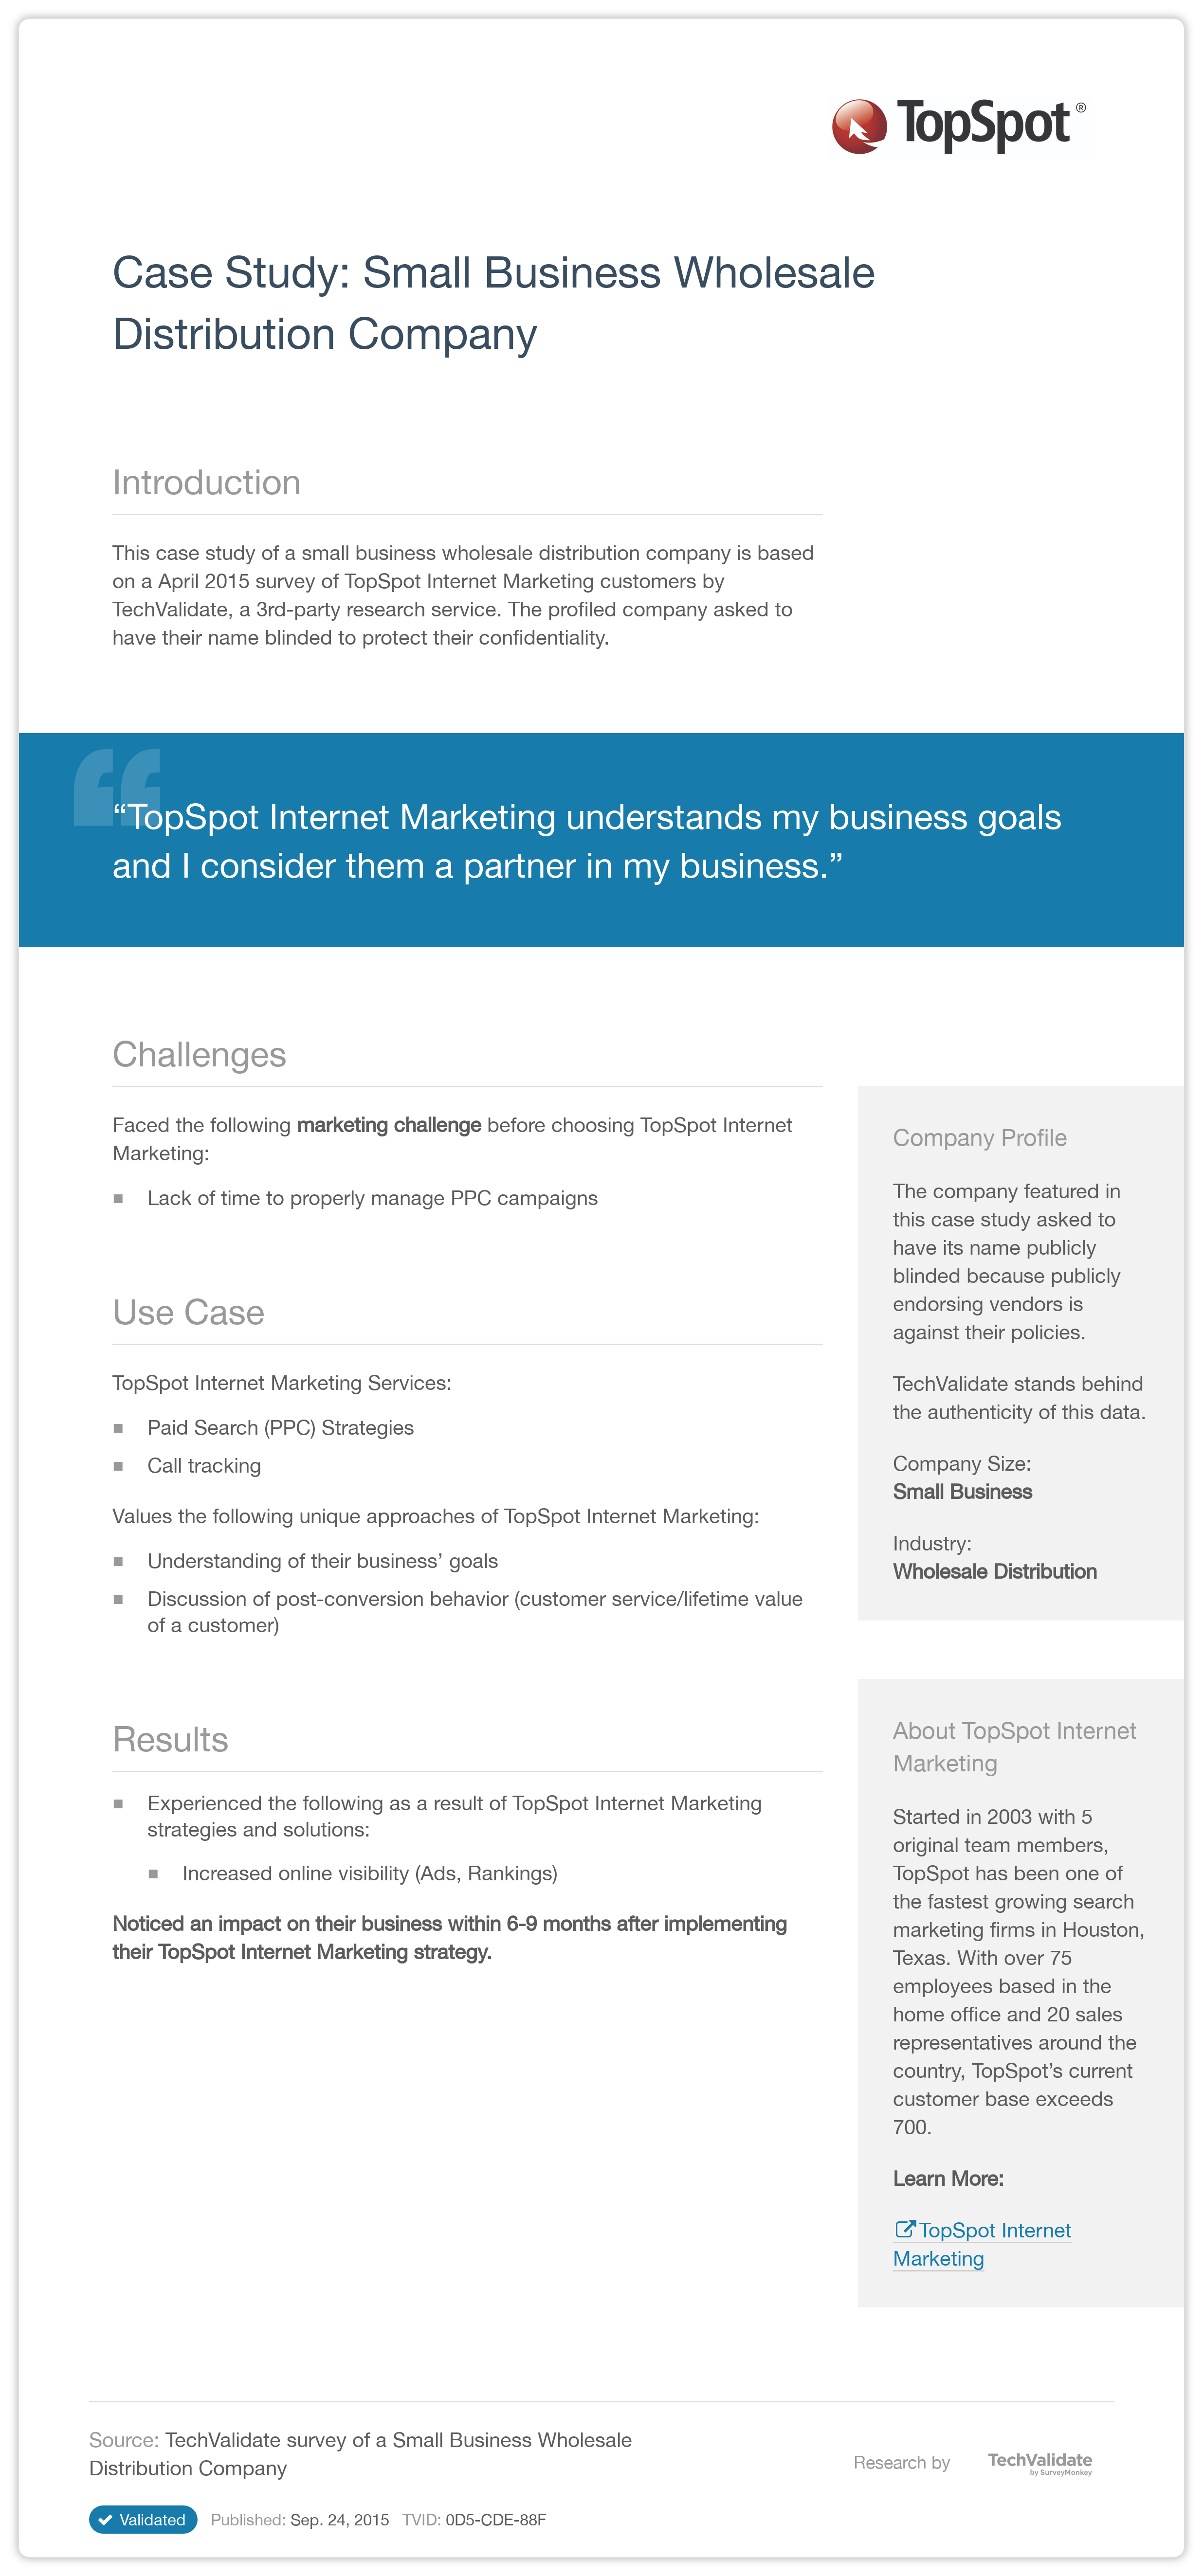 online direct marketing case studies Aug 2, 2014 the best and worst direct marketing creative strategies - case studies from several verticals this environment has seen some of the best and proven direct marketing campaigns and some fairly week ones evolve internet banner campaigns that drive traffic to a ipp (site) for prospect qualification.